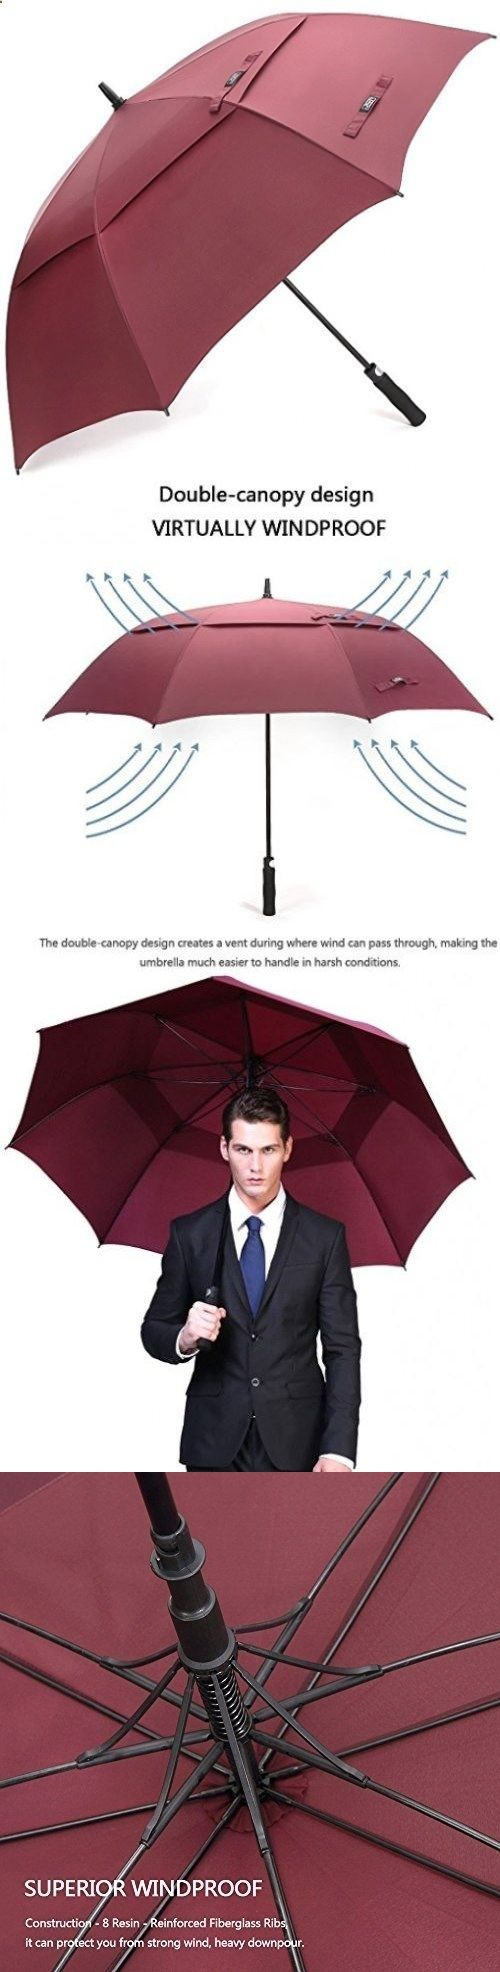 Golf Umbrellas 18933: G4free Ultimate Golf Umbrella Double Canopy Large Oversize Wine Red Windproof -> BUY IT NOW ONLY: $30.47 on eBay!